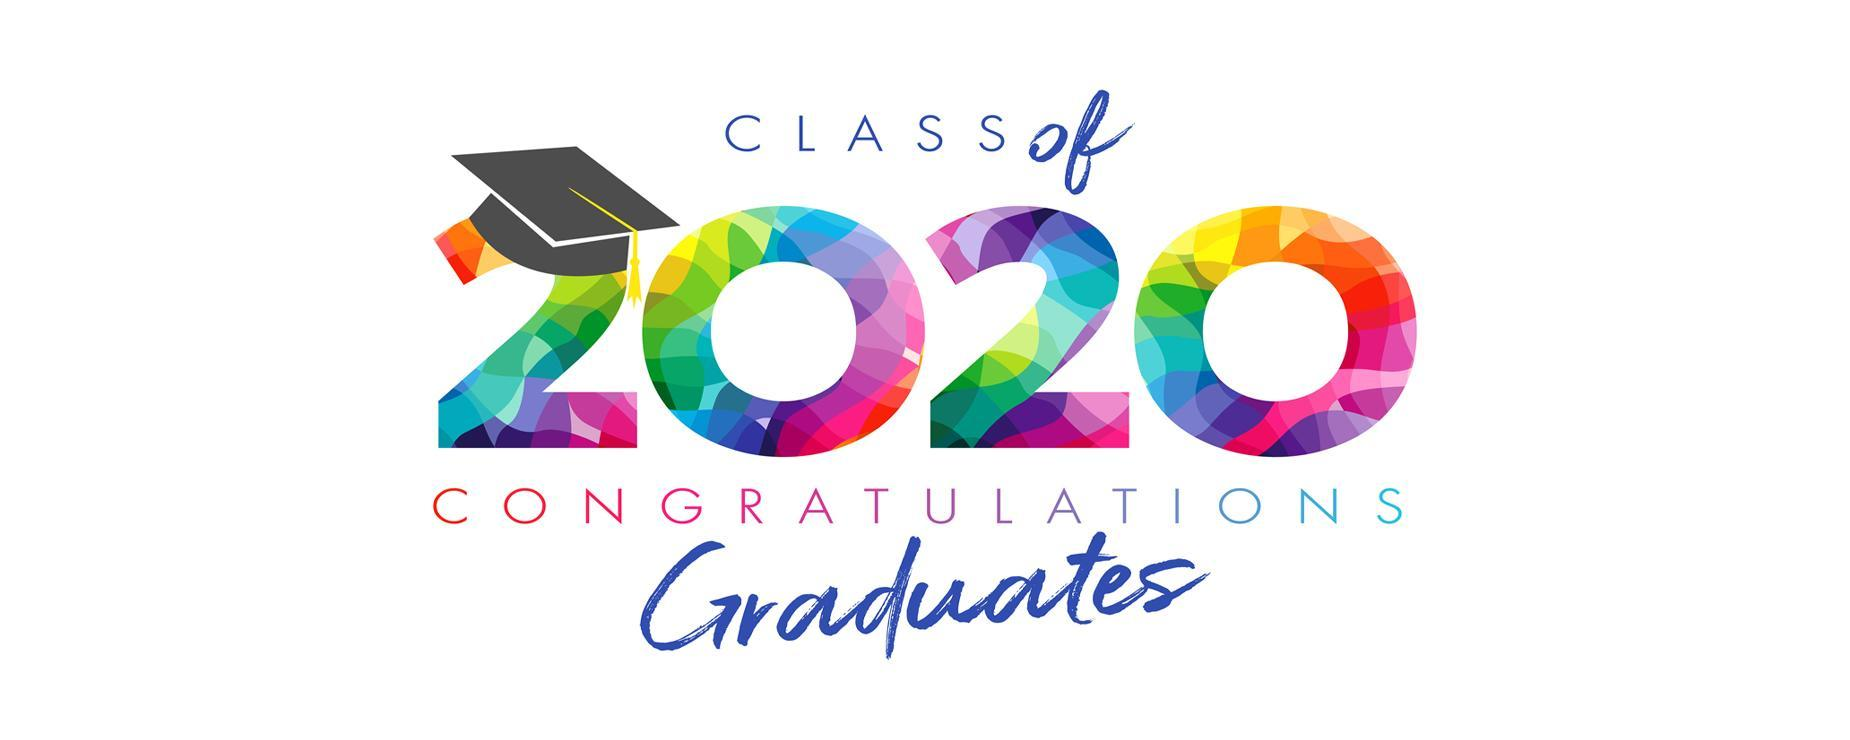 Bright Graphic 2020 that says Class of 2020 Congratulations Graduates